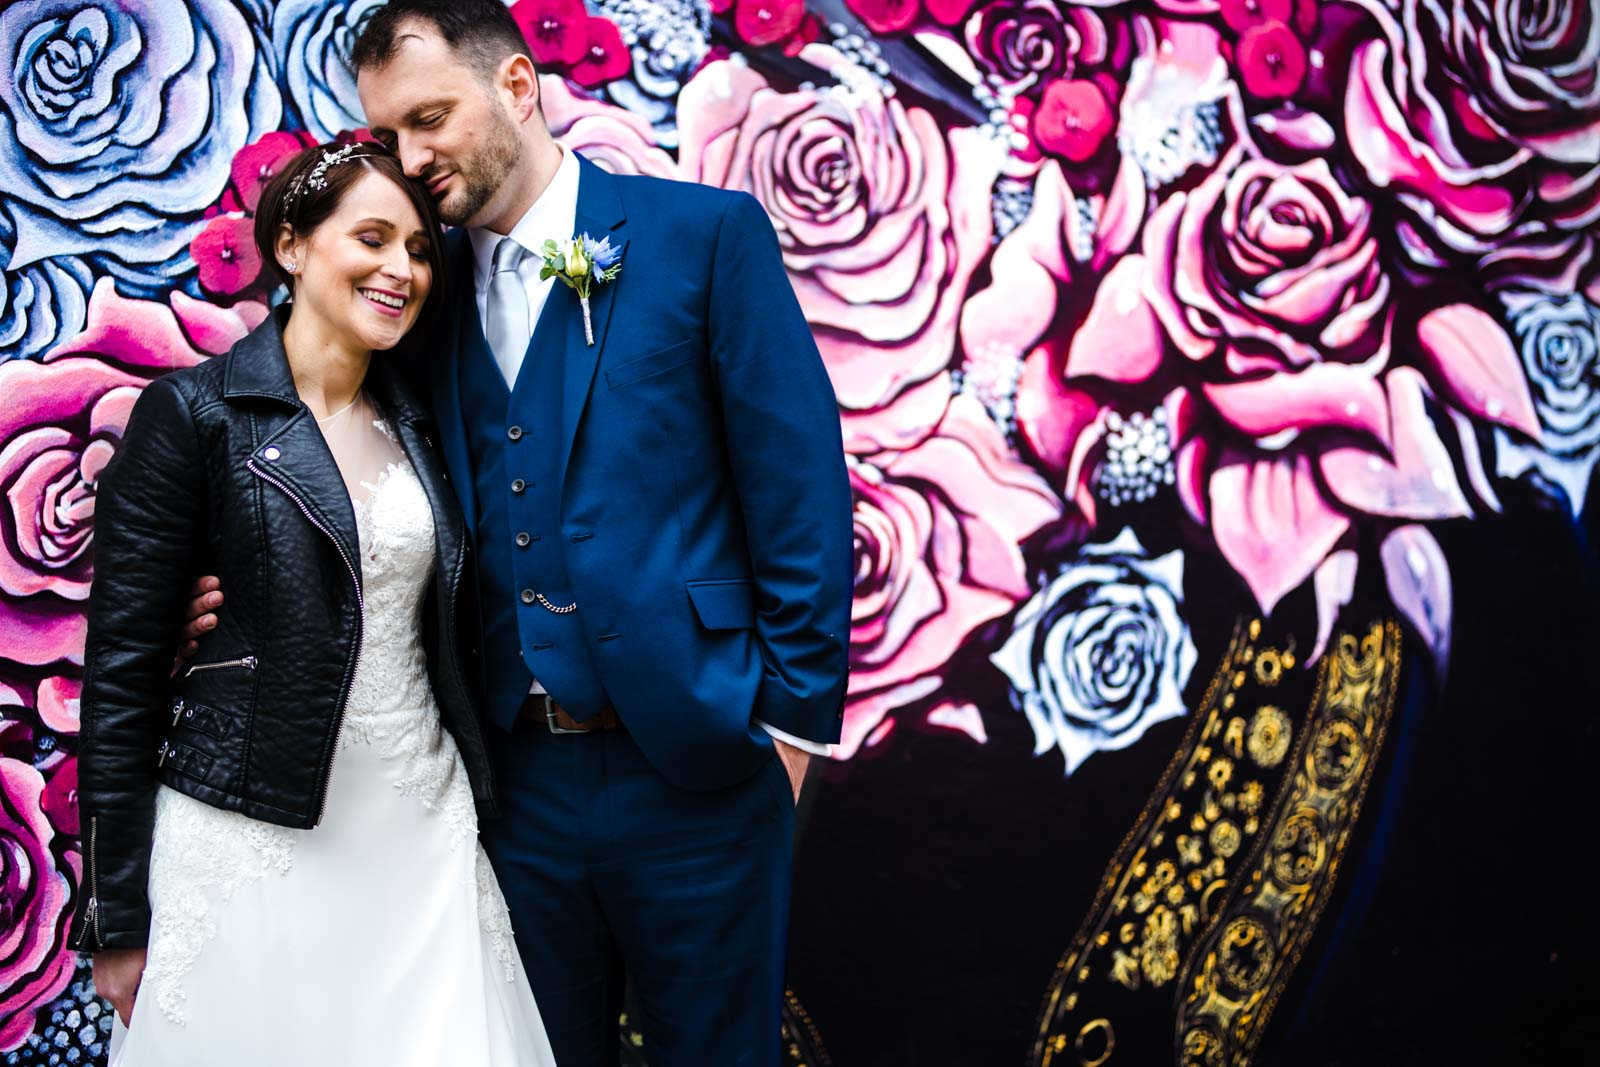 Bride and Groom standing in front of graffiti